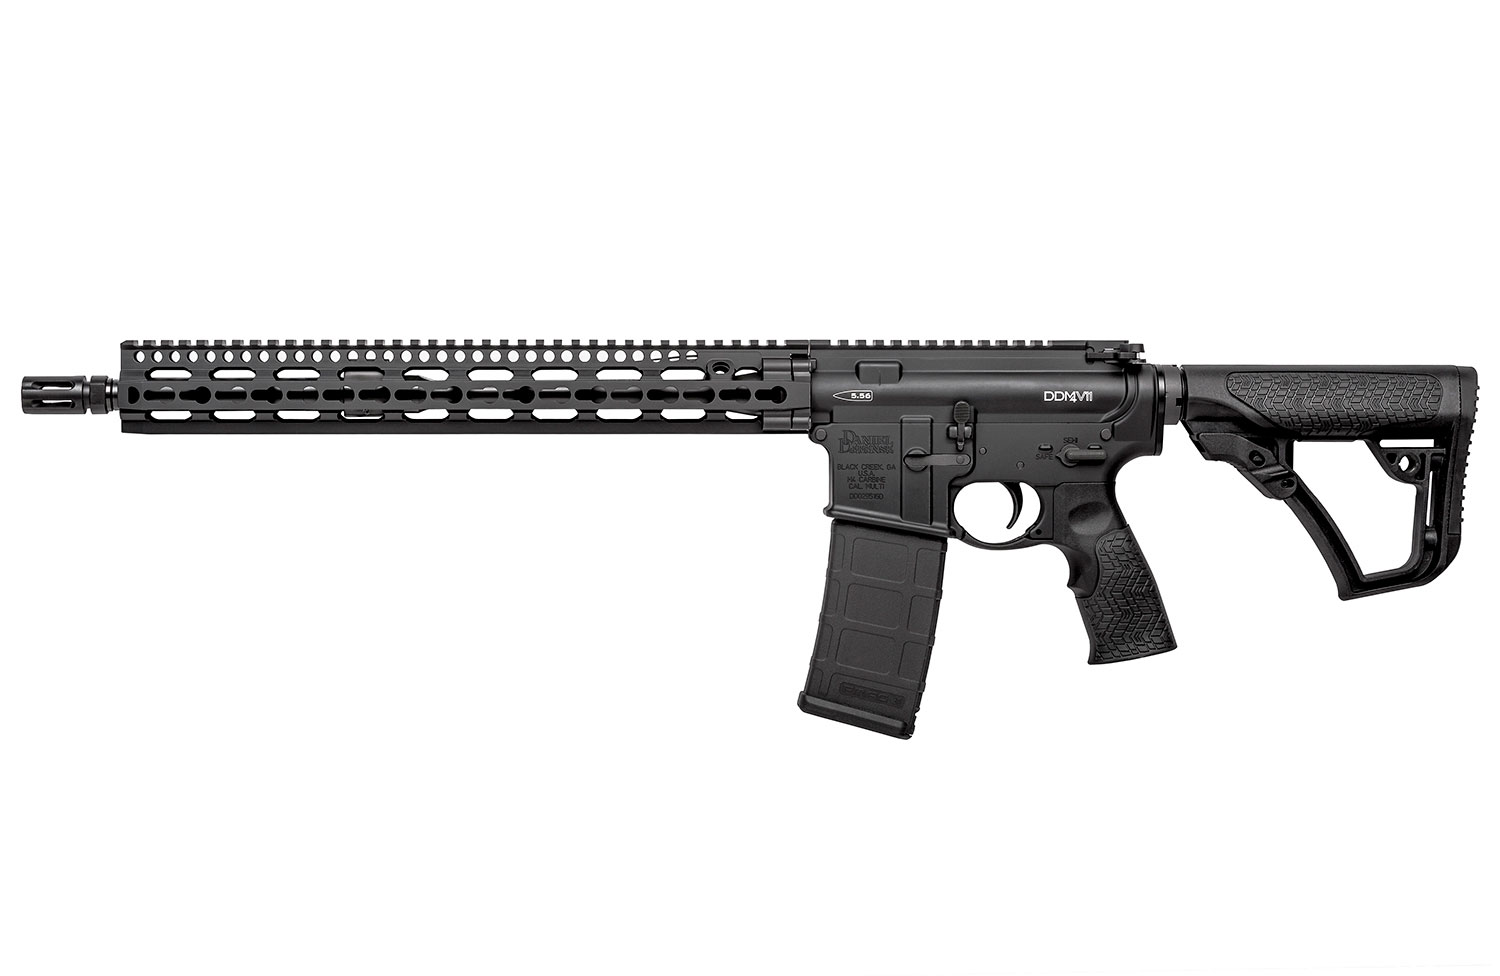 Daniel Defense DDM4v11 Rifle